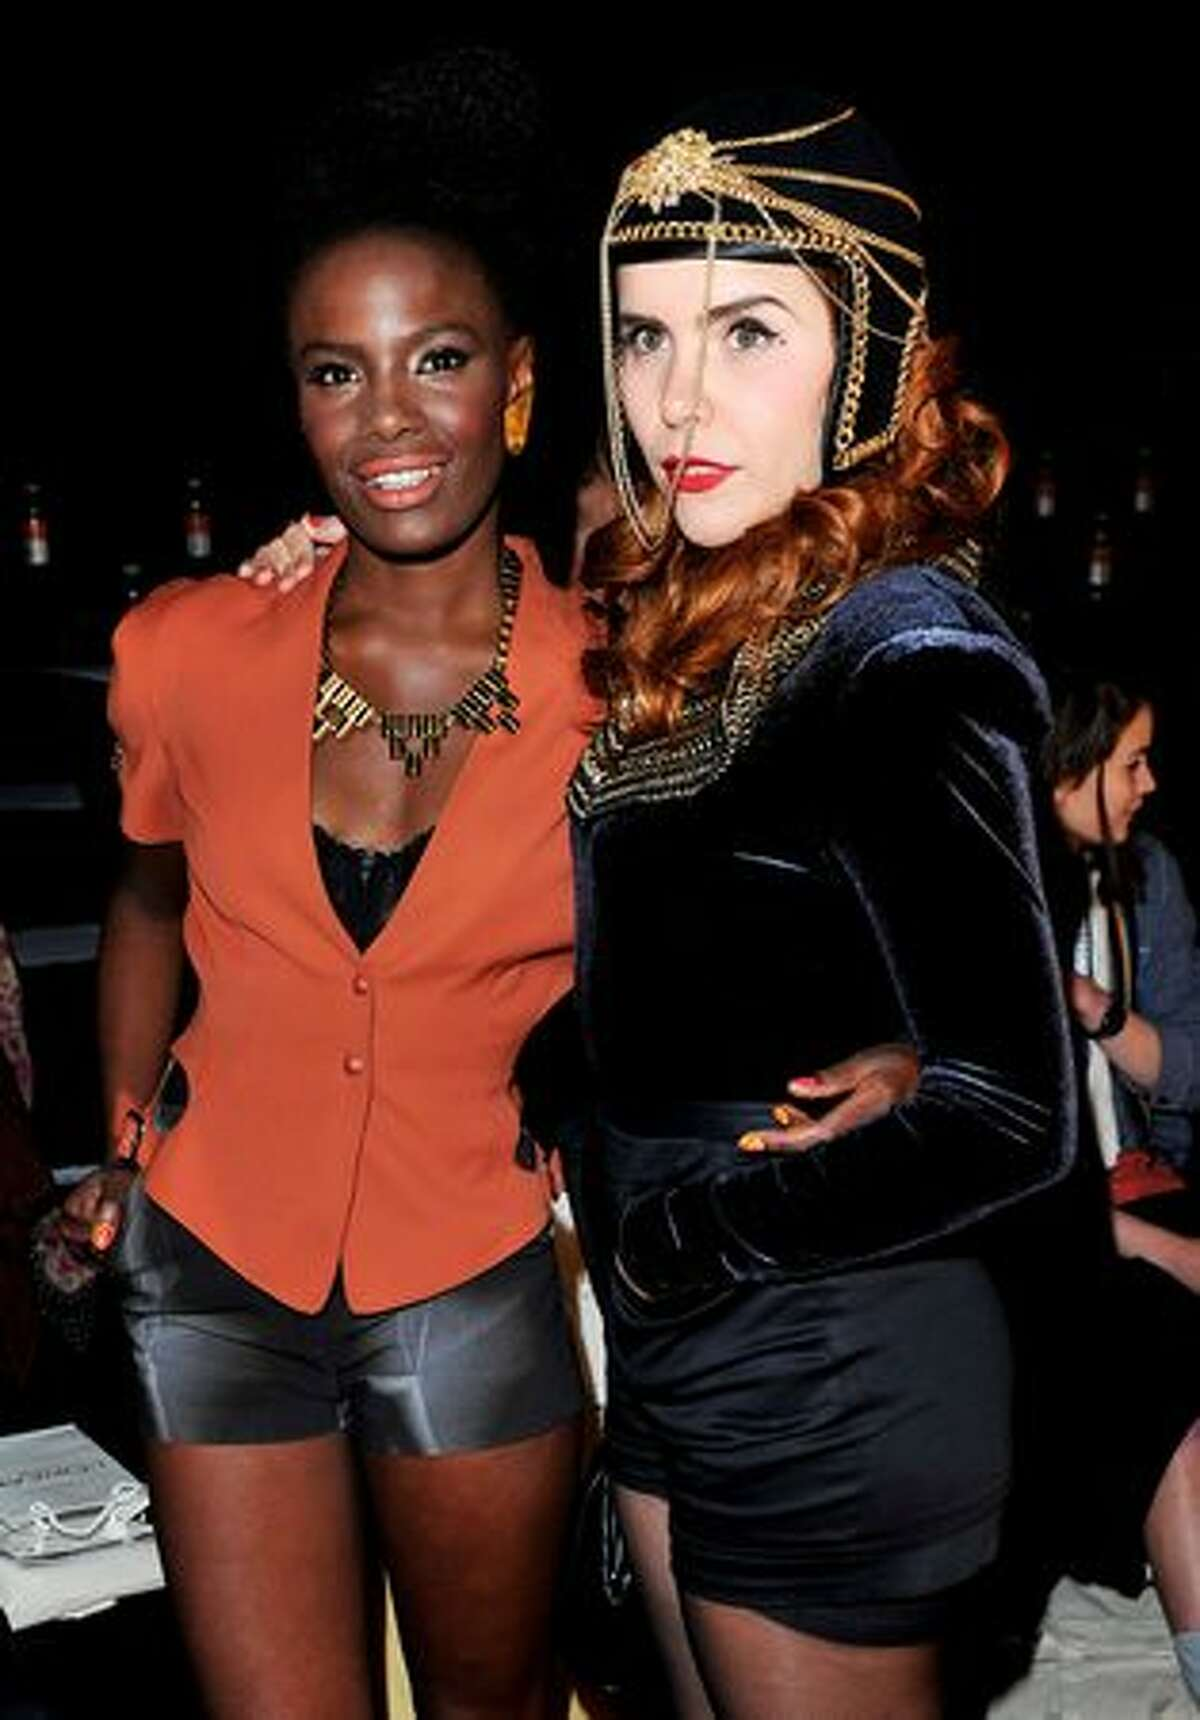 Musicians Shingai Shoniwa (L) and Paloma Faith attend the Felder Felder and Hannah Marshall Spring/Summer 2011 fashion shows during LFW at the Somerset House in London, England.